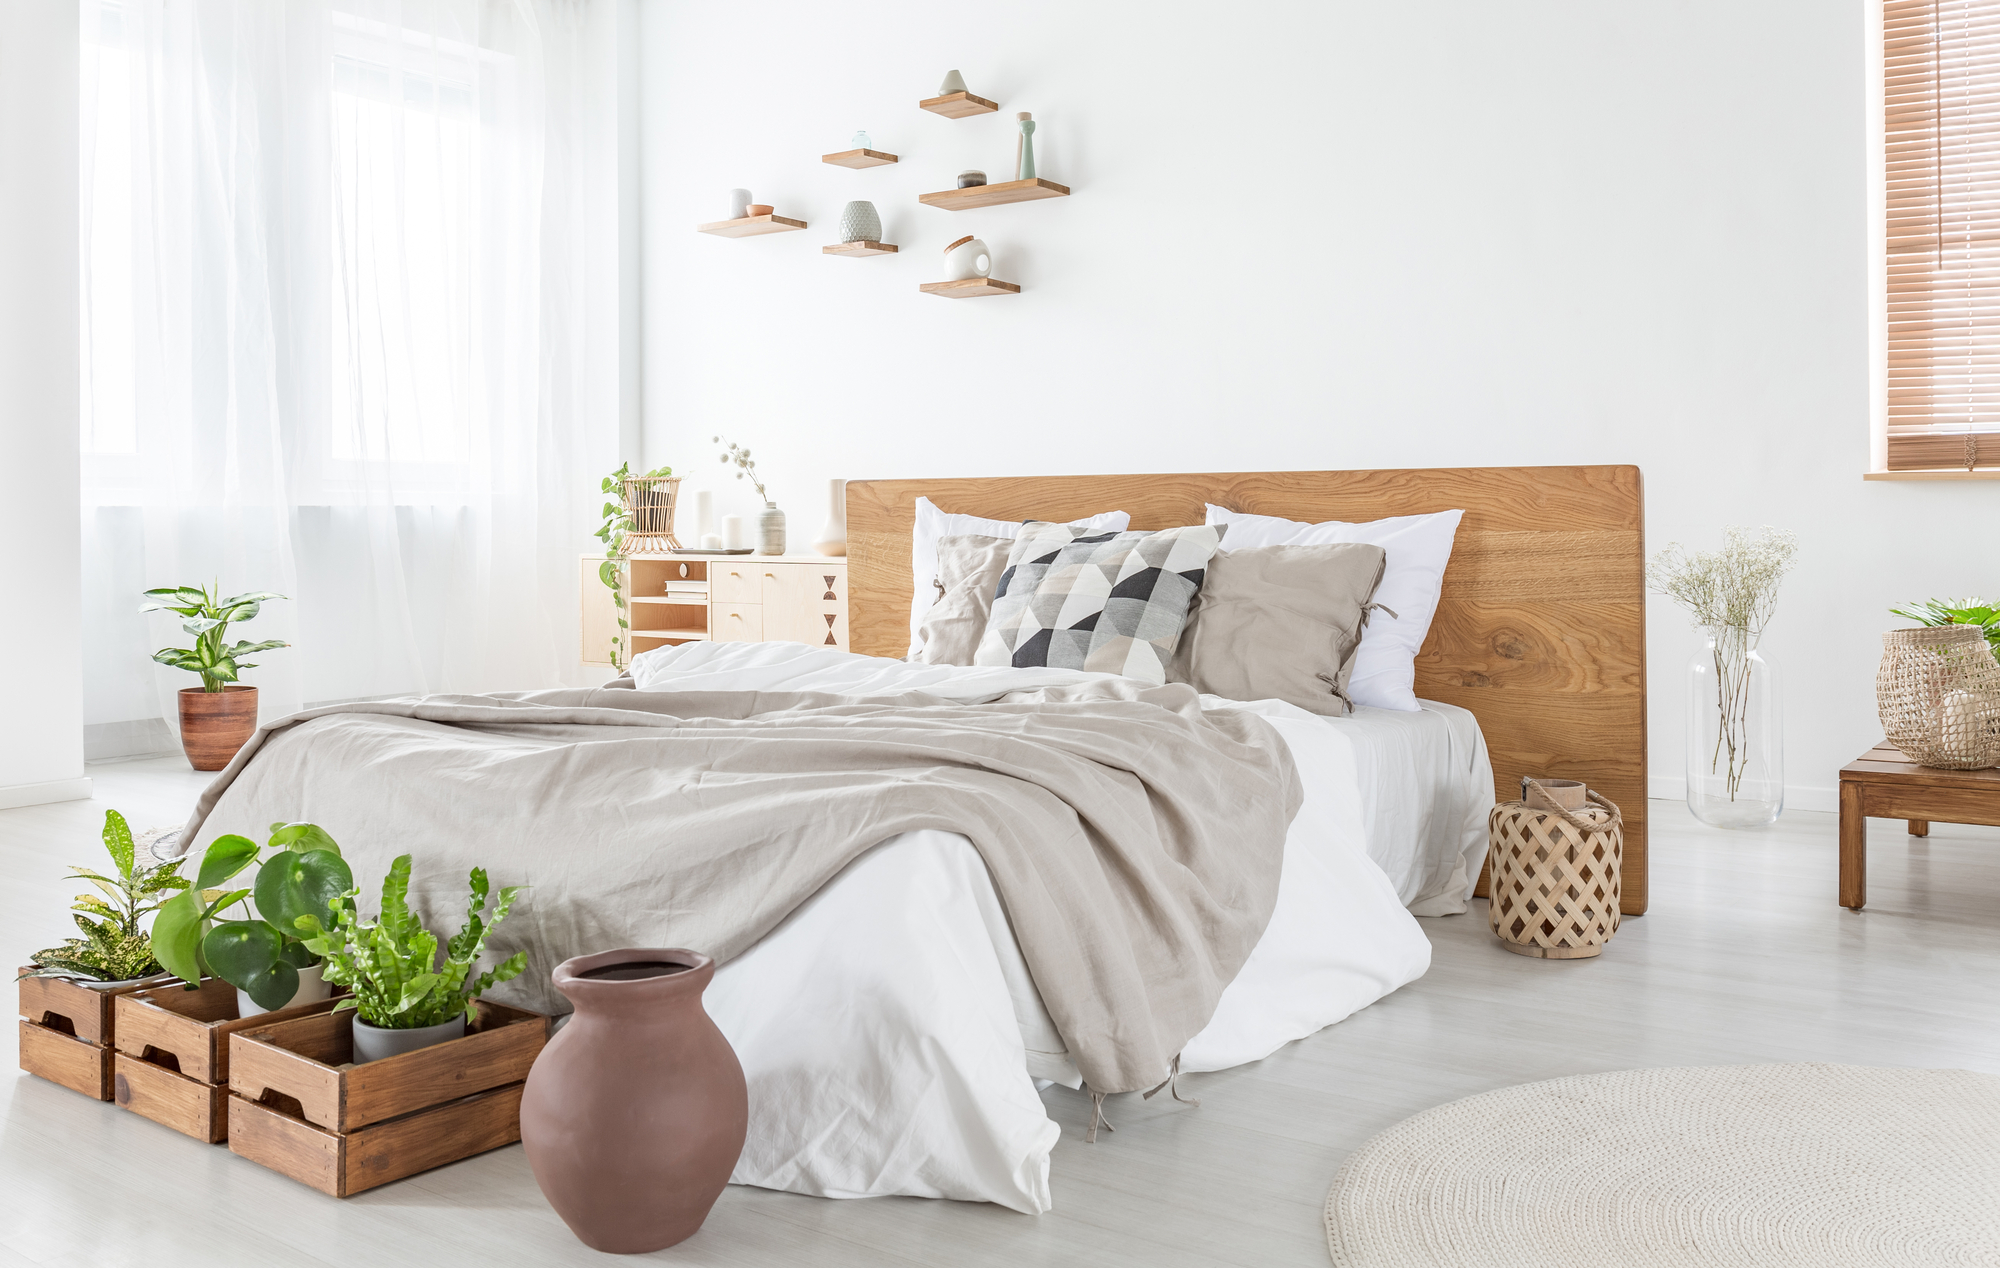 Pillows and sheets on wooden bed in bright bedroom